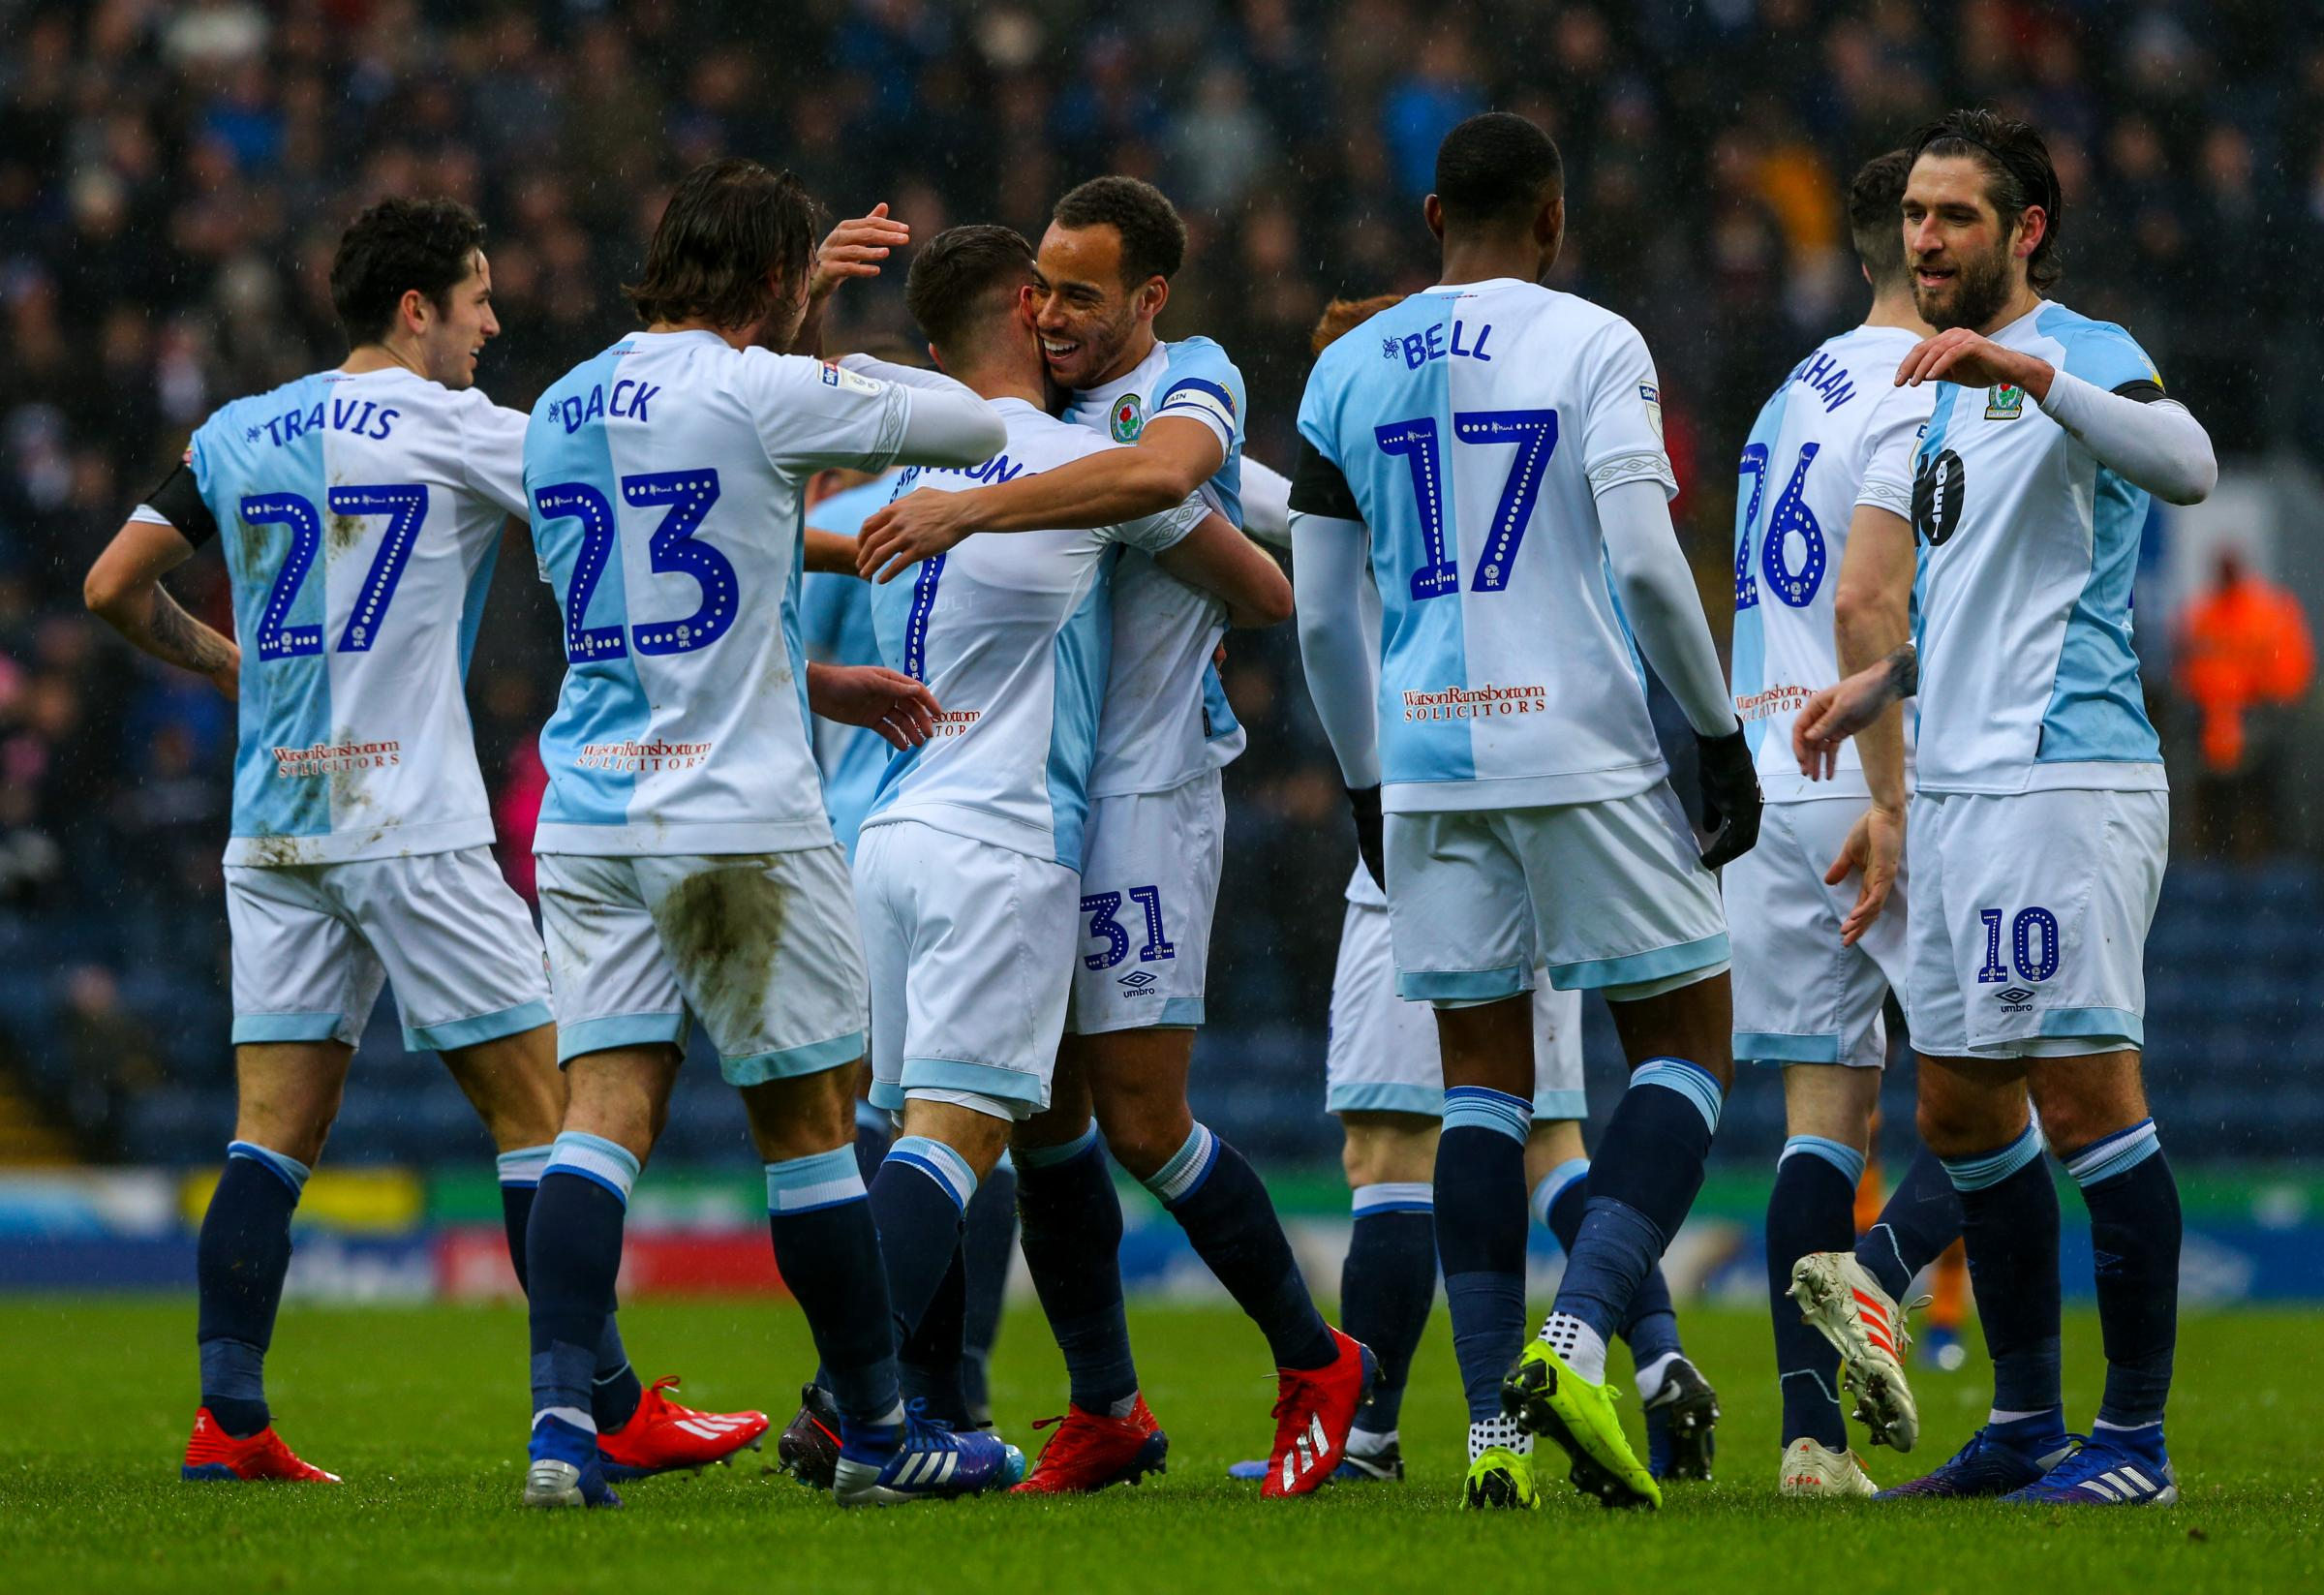 Rovers won four consecutive games last month